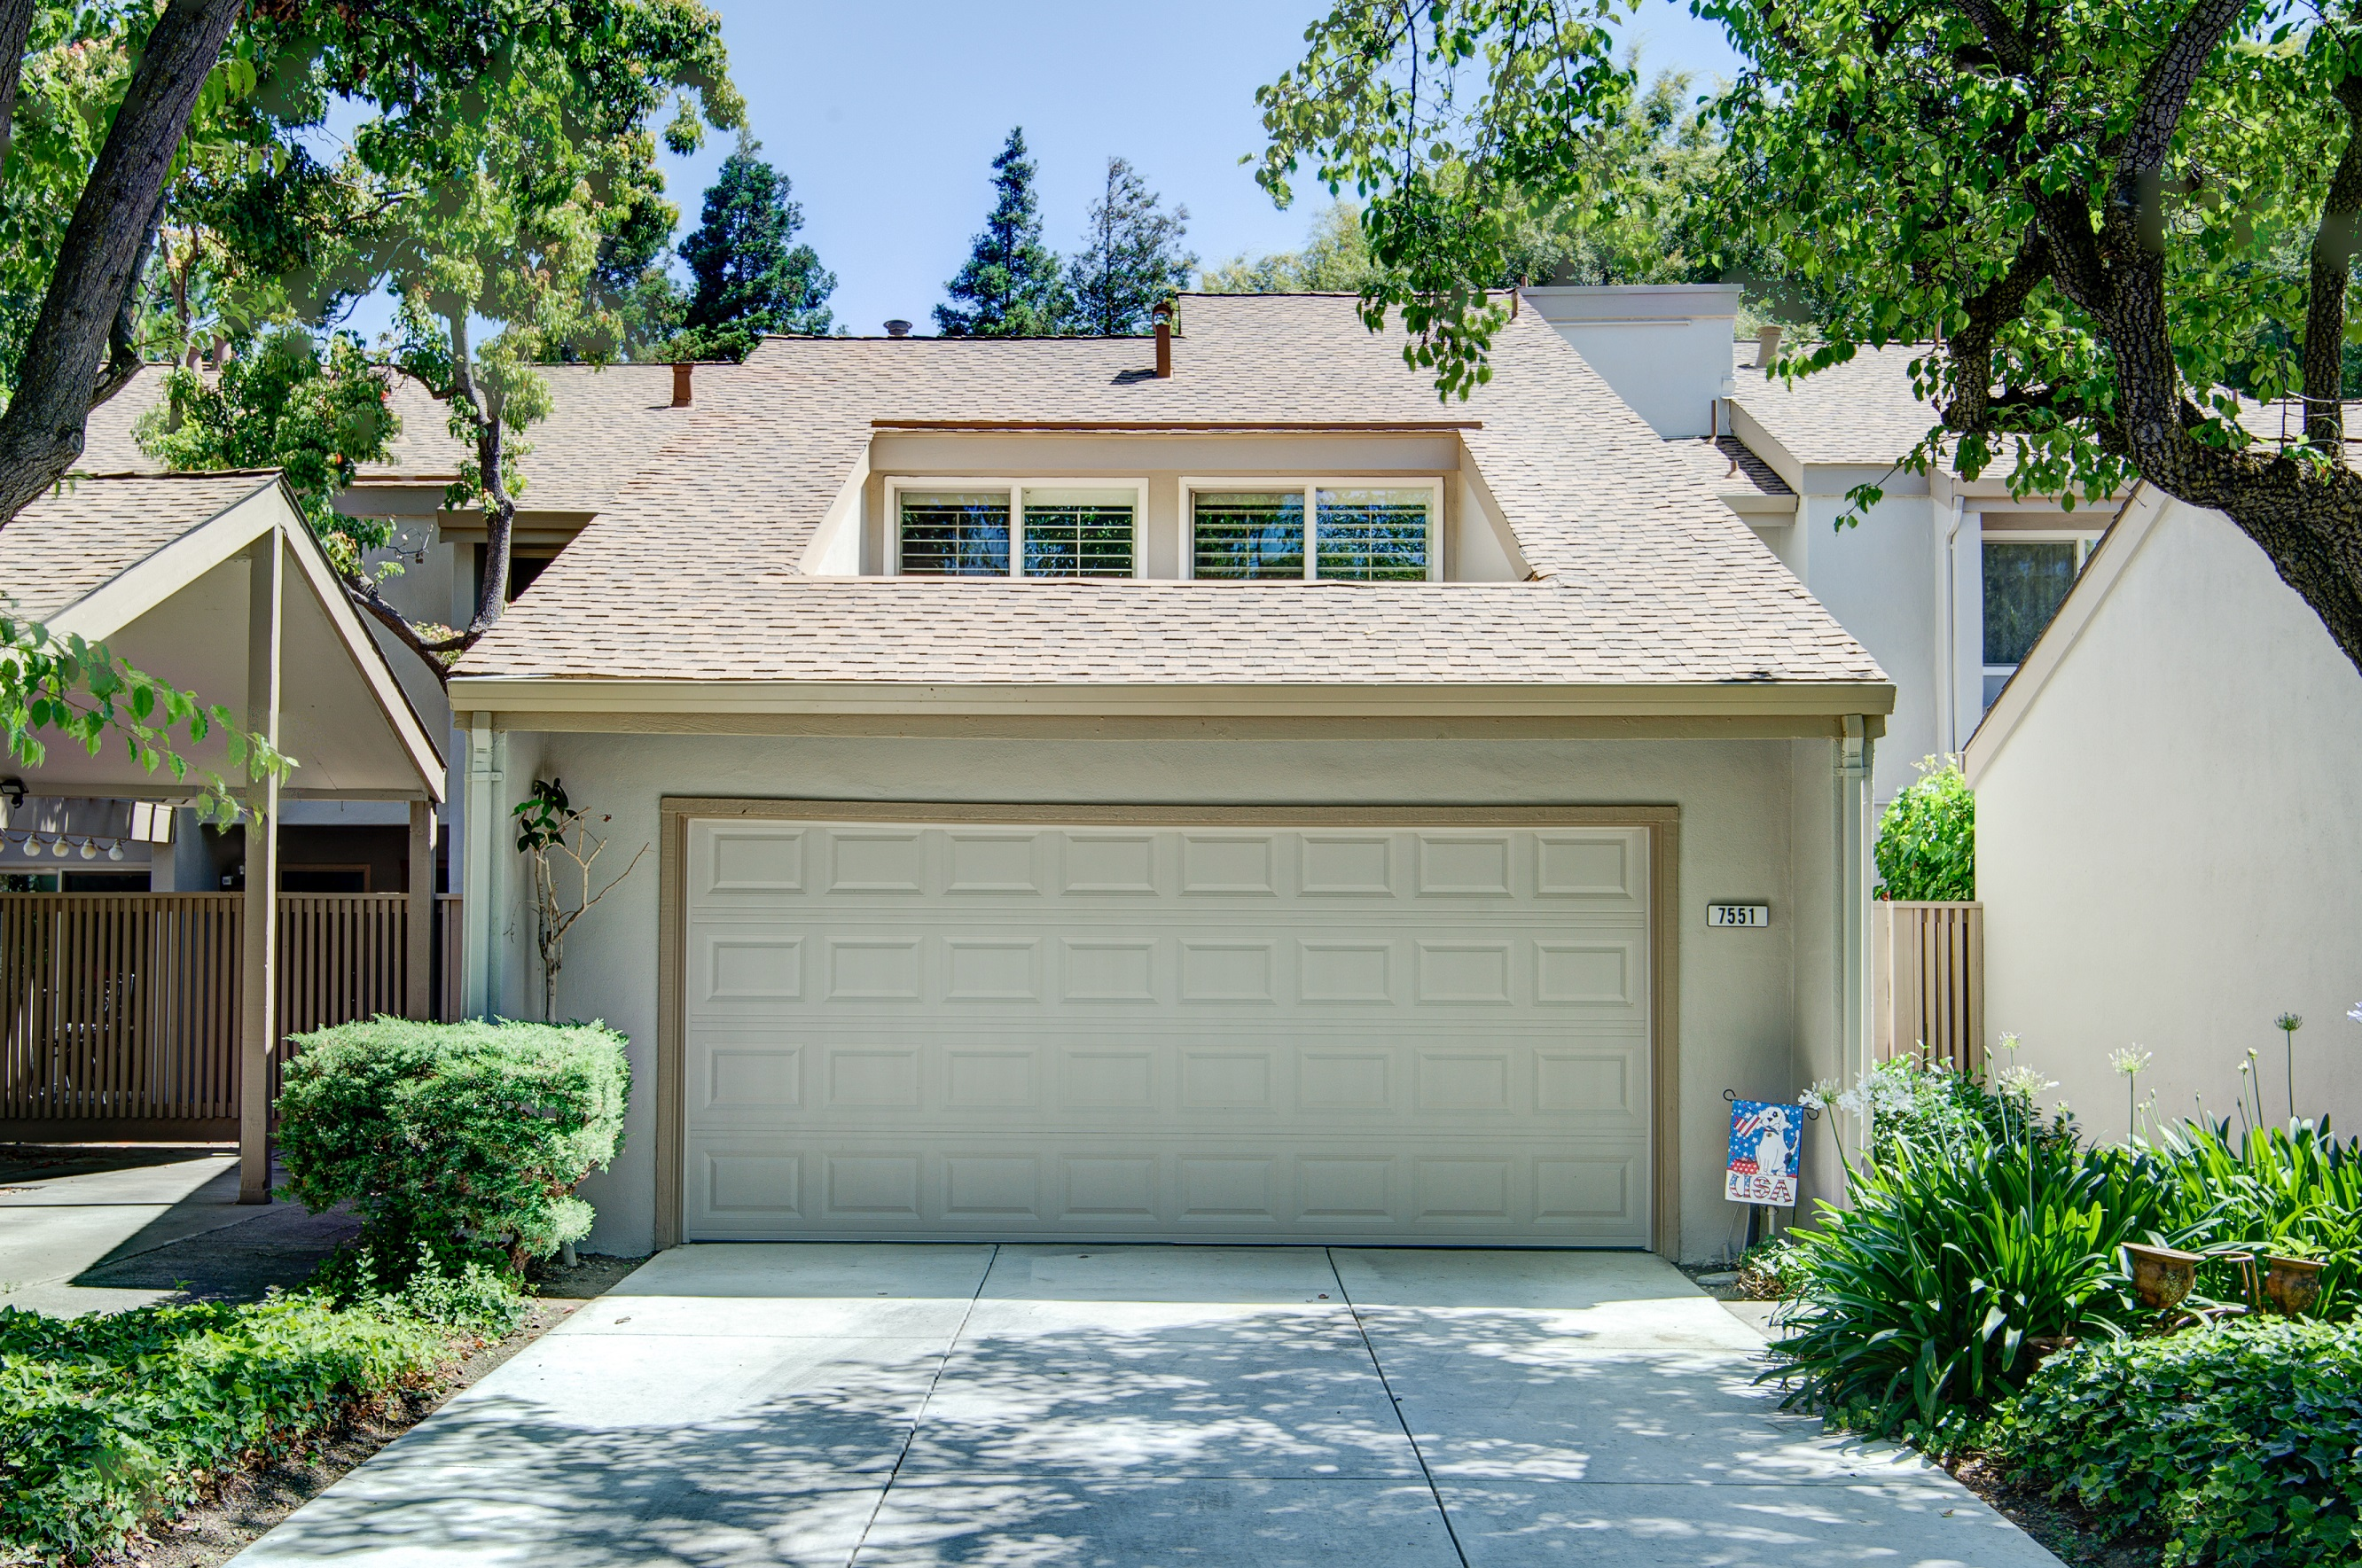 7551_Ivy_Ct_Pleasanton-001